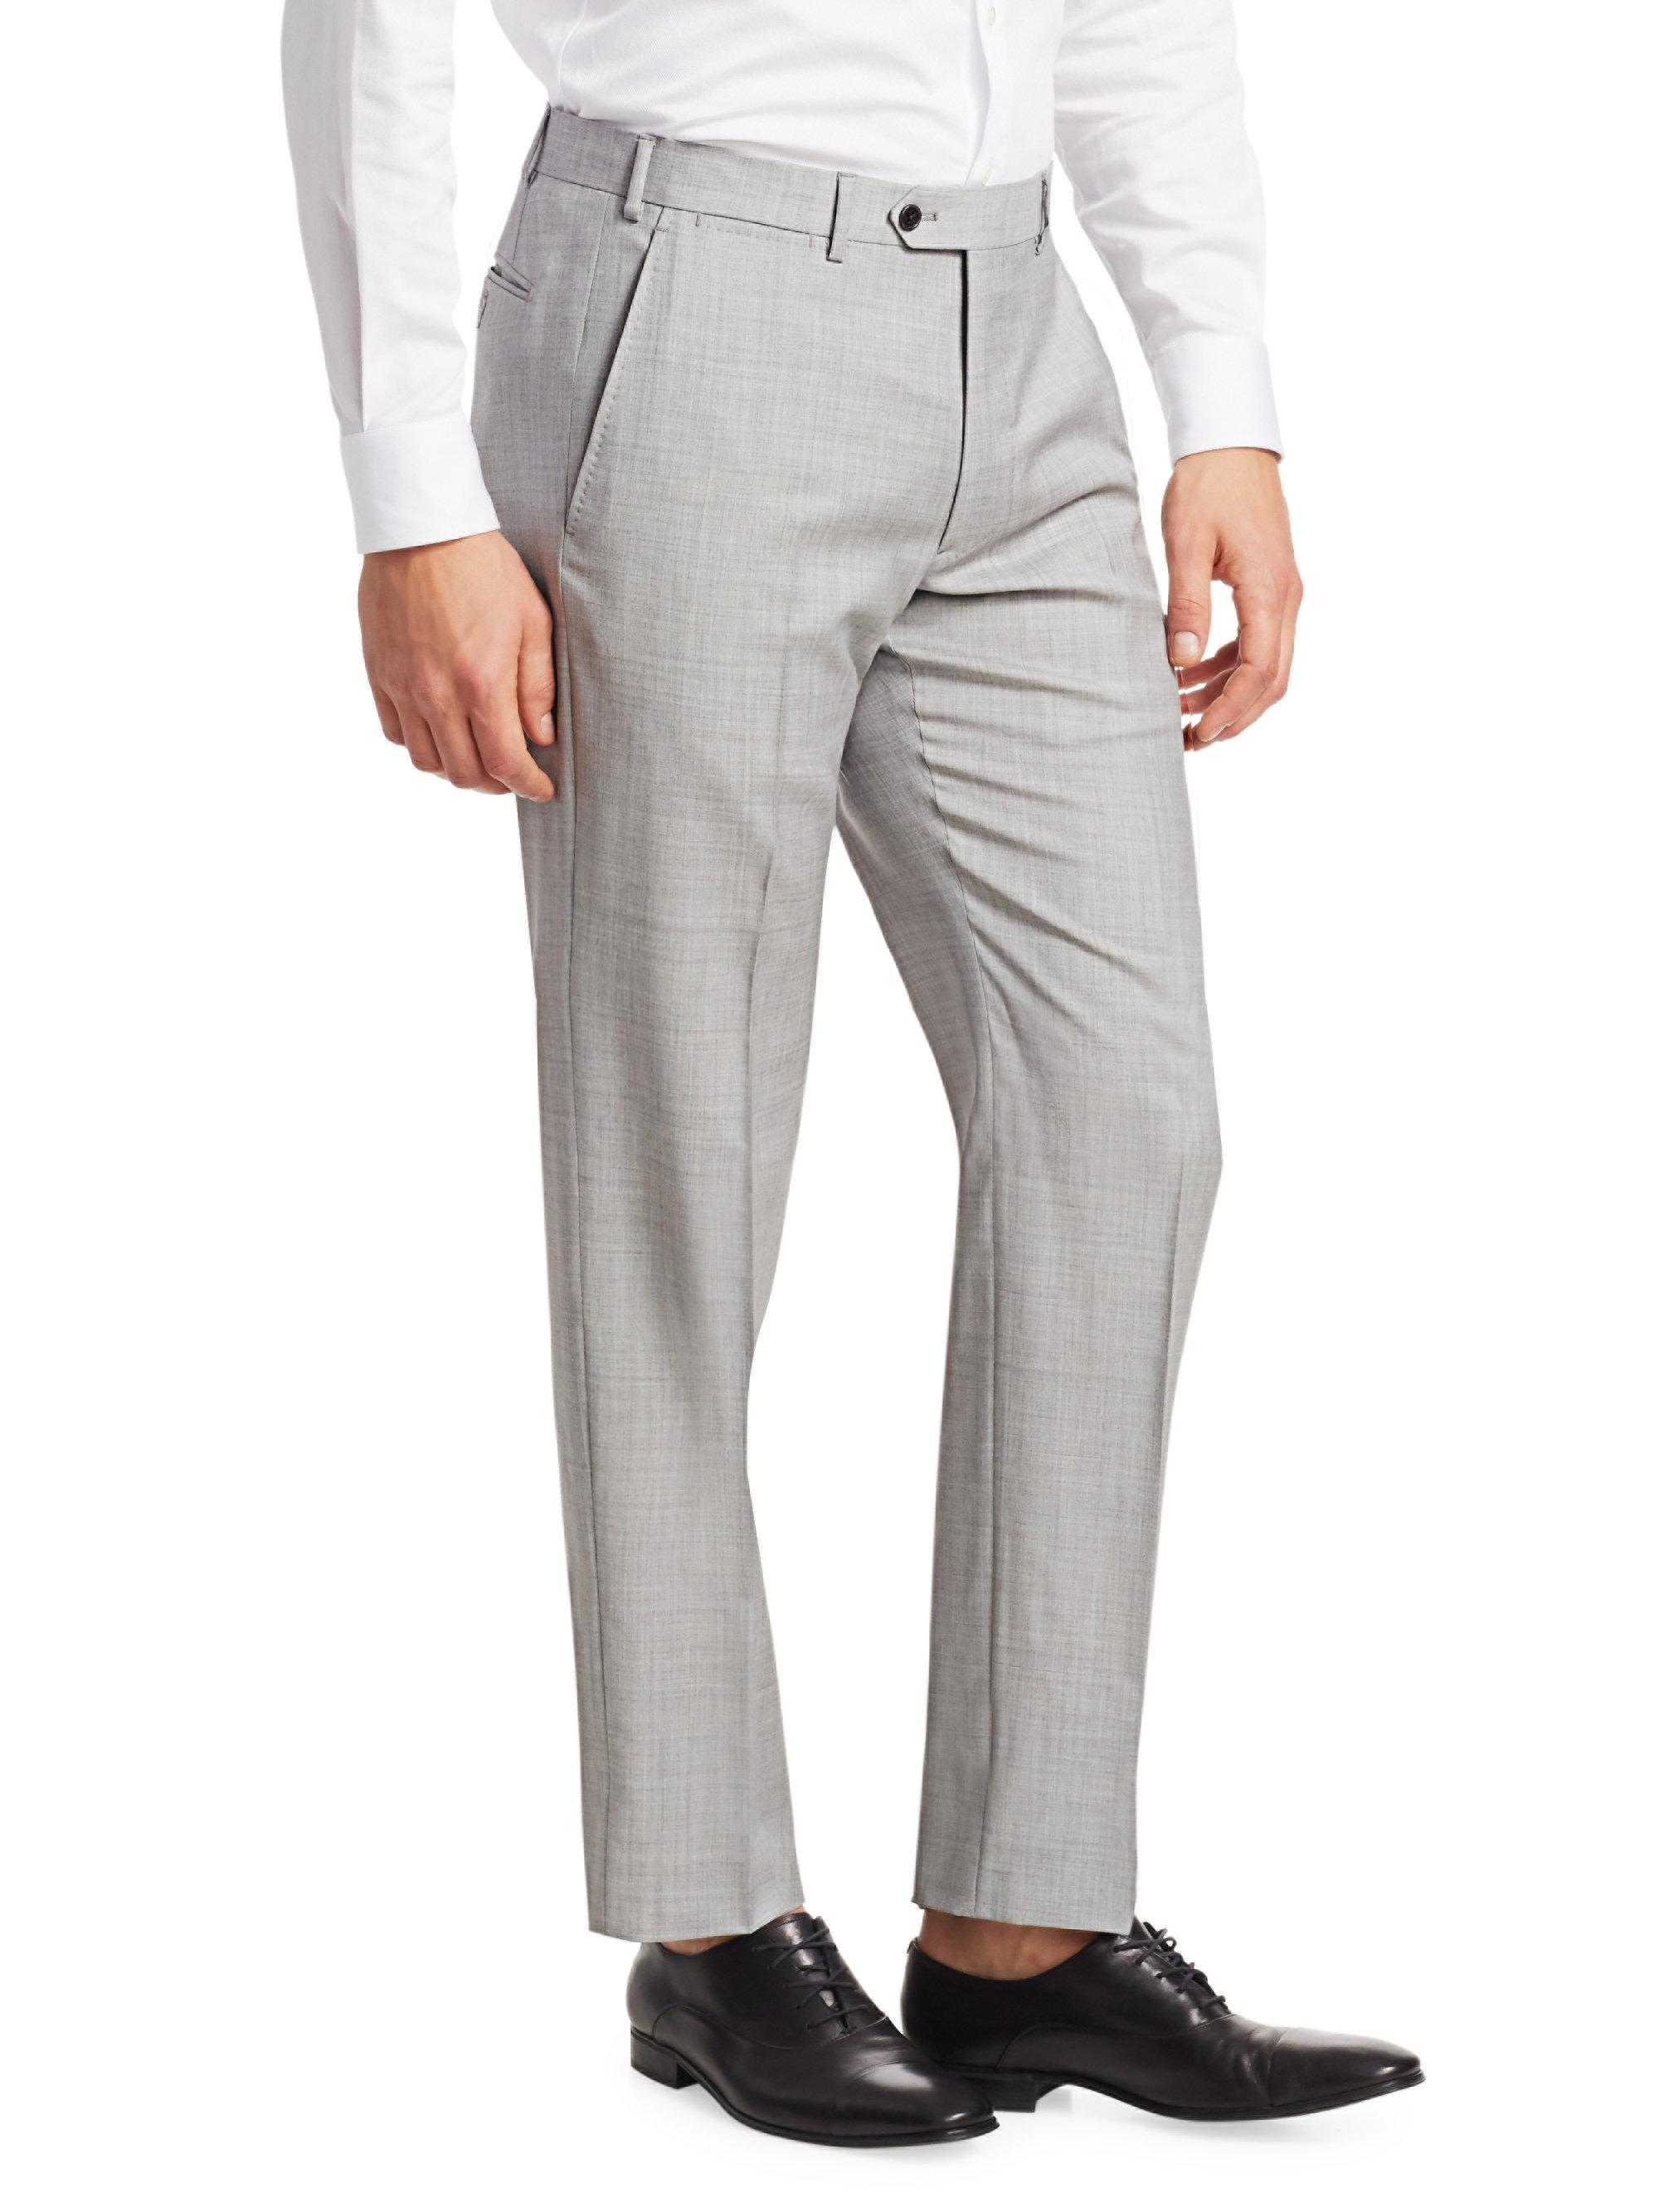 c0e70a4664b1be Lyst - Emporio Armani Men's Wool-blend Suiting Pants - Light Grey - Size 48  (32) R in Gray for Men